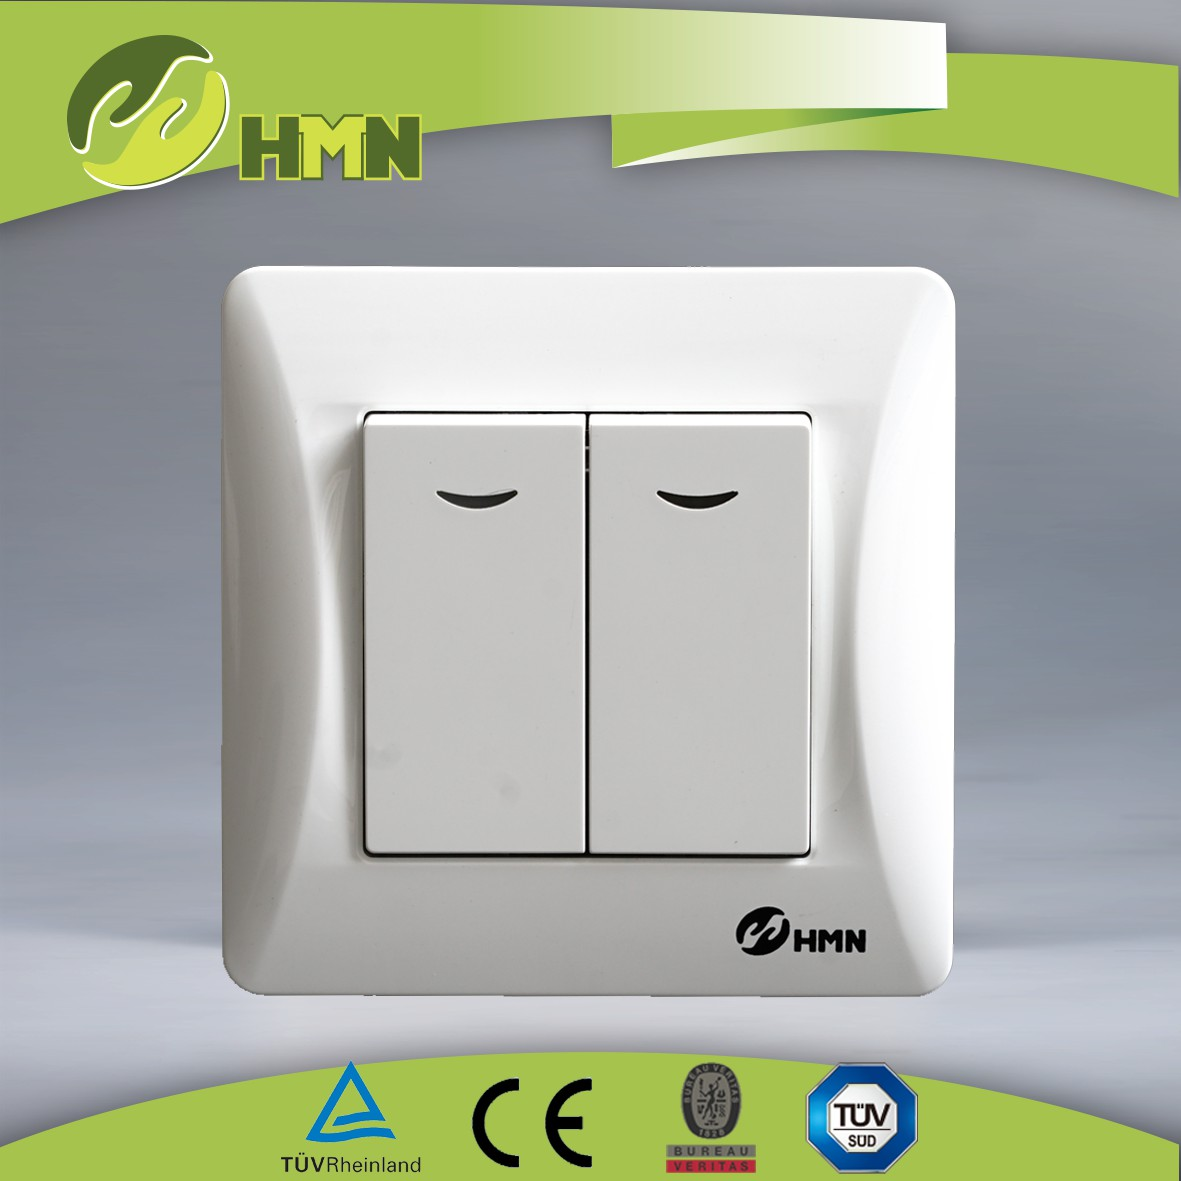 H121N/H122N   2 gang 1 way/2 way switch  W/N